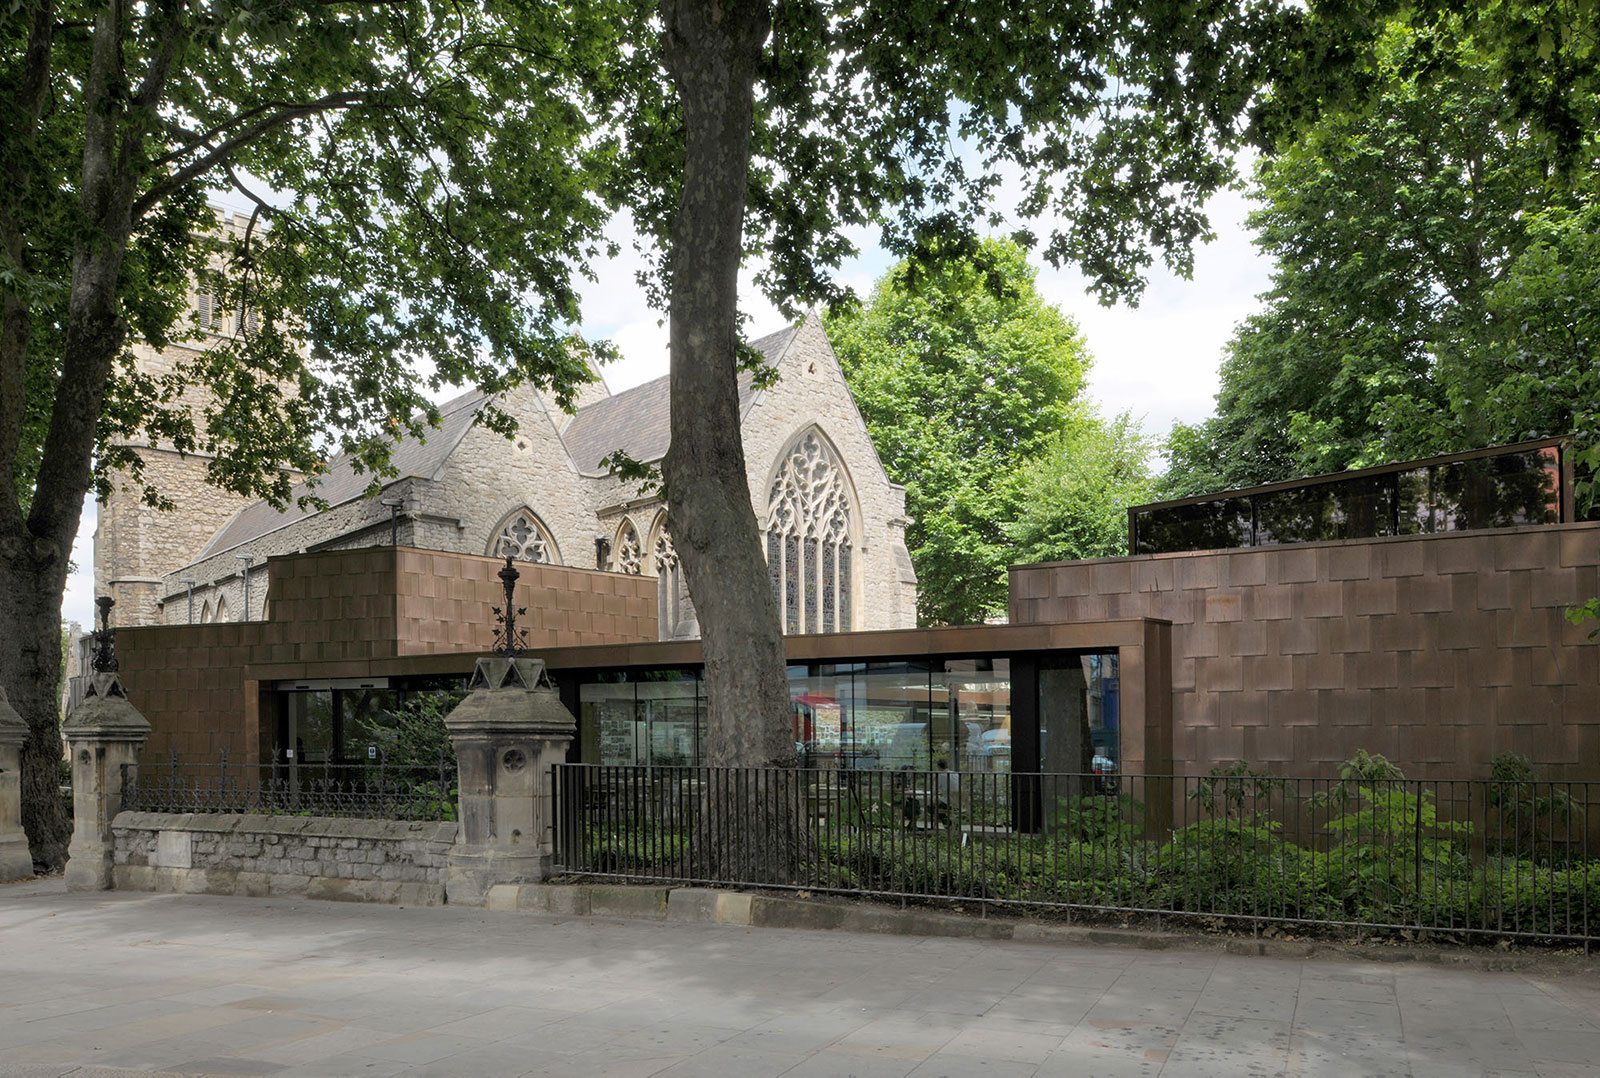 Street-view of the Garden Museum building which is clad in Nordic Bronze copper. Separating the building and the pedestrian walkway is traditional churchyard garden wall with iron bar fence. Behind all this is the church building.